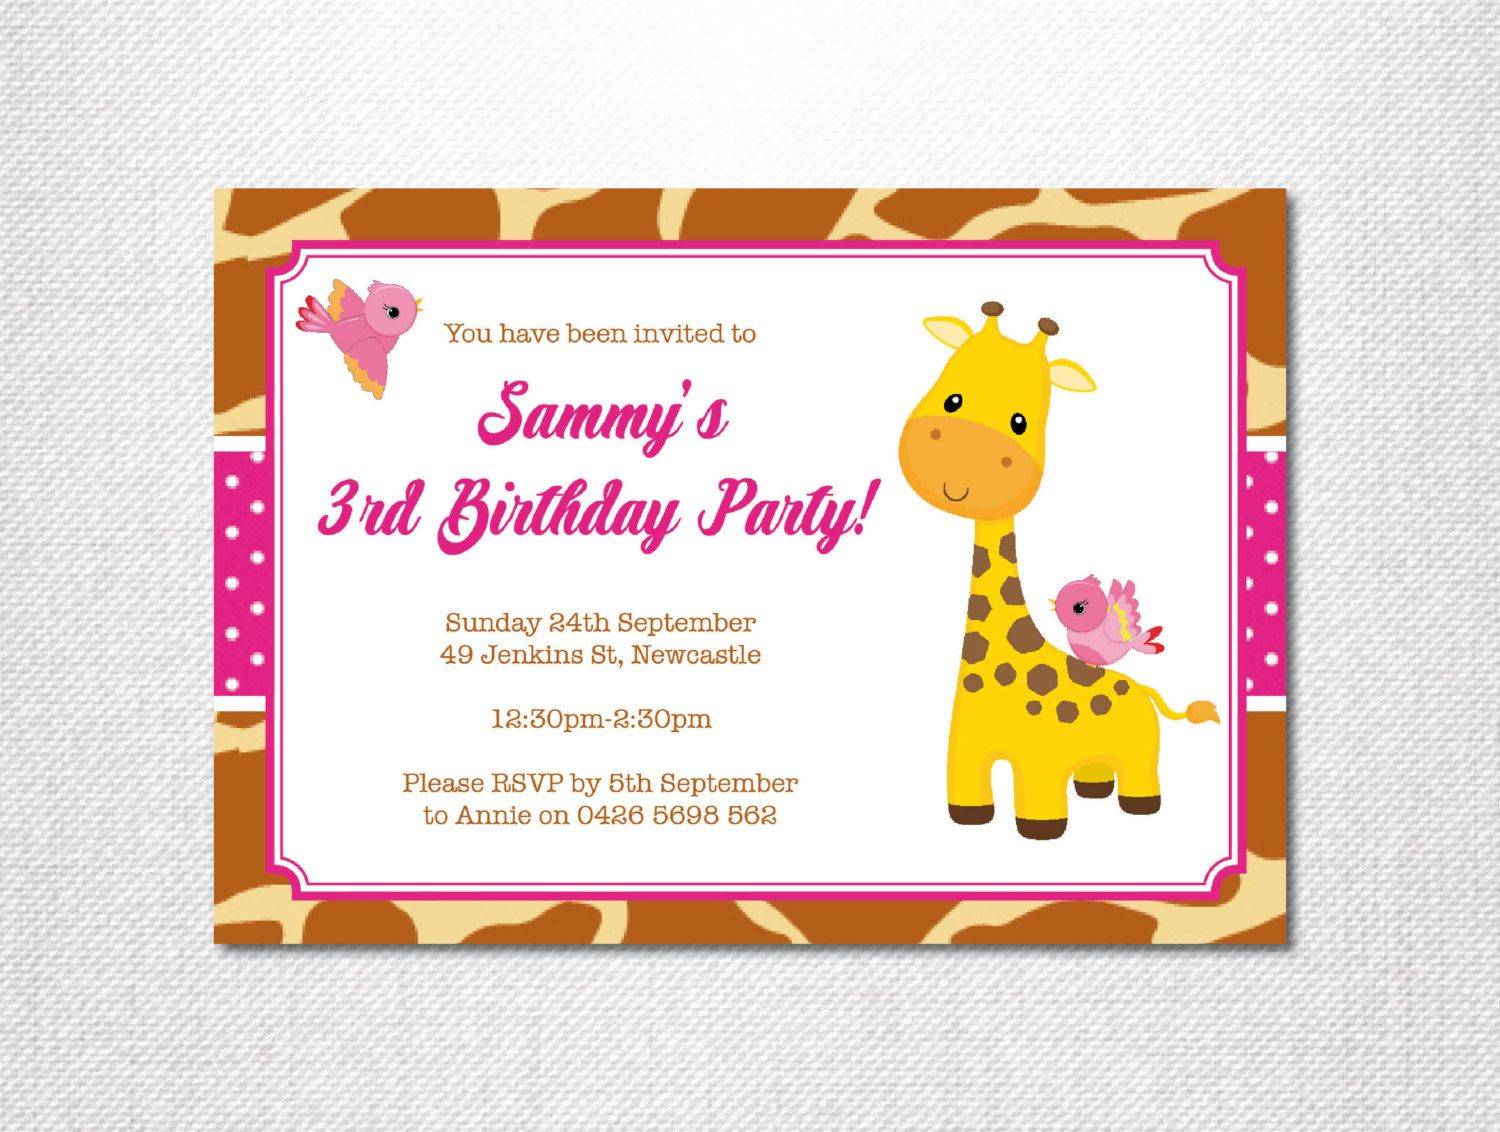 Giraffe Birthday Invitations ~ Giraffe Birthday Party ~ Giraffe ...